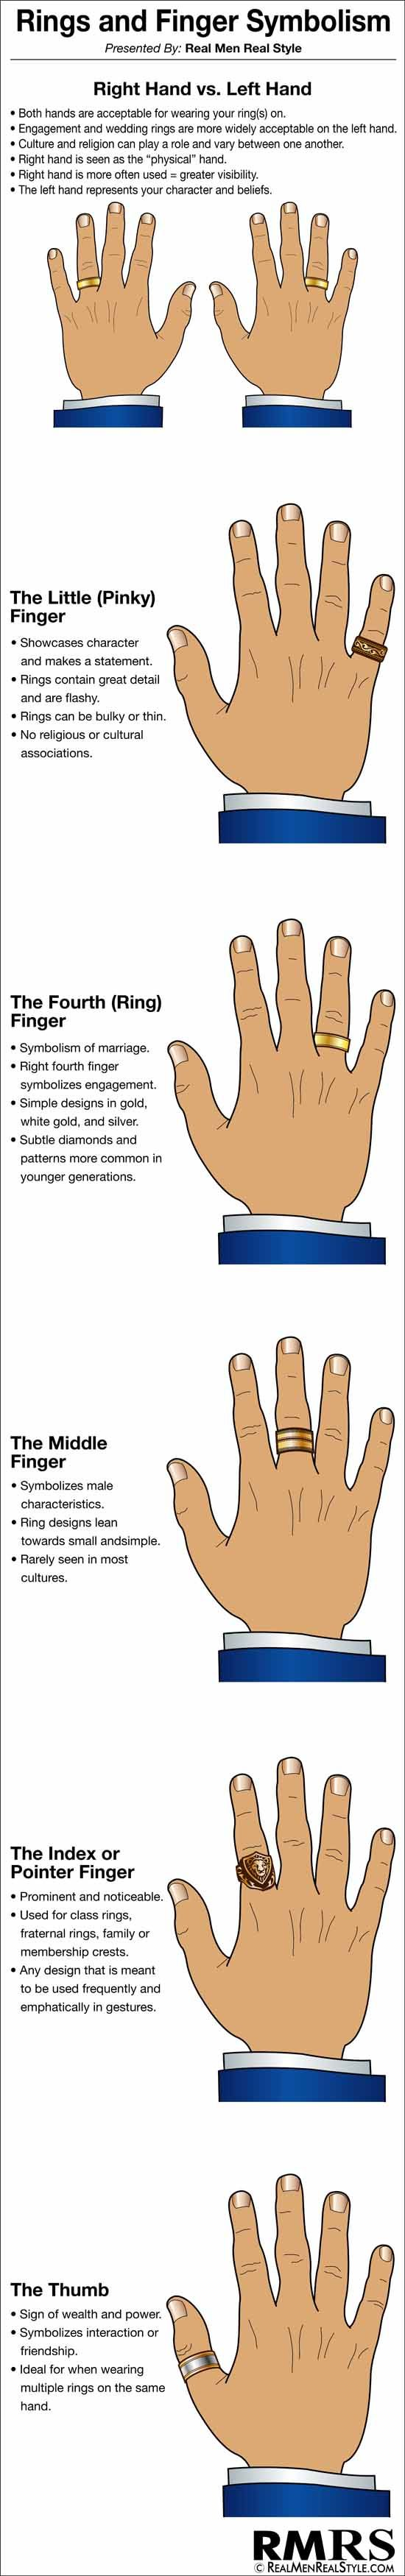 ring finger symbolism infographic ring finger infographic and finger. Black Bedroom Furniture Sets. Home Design Ideas